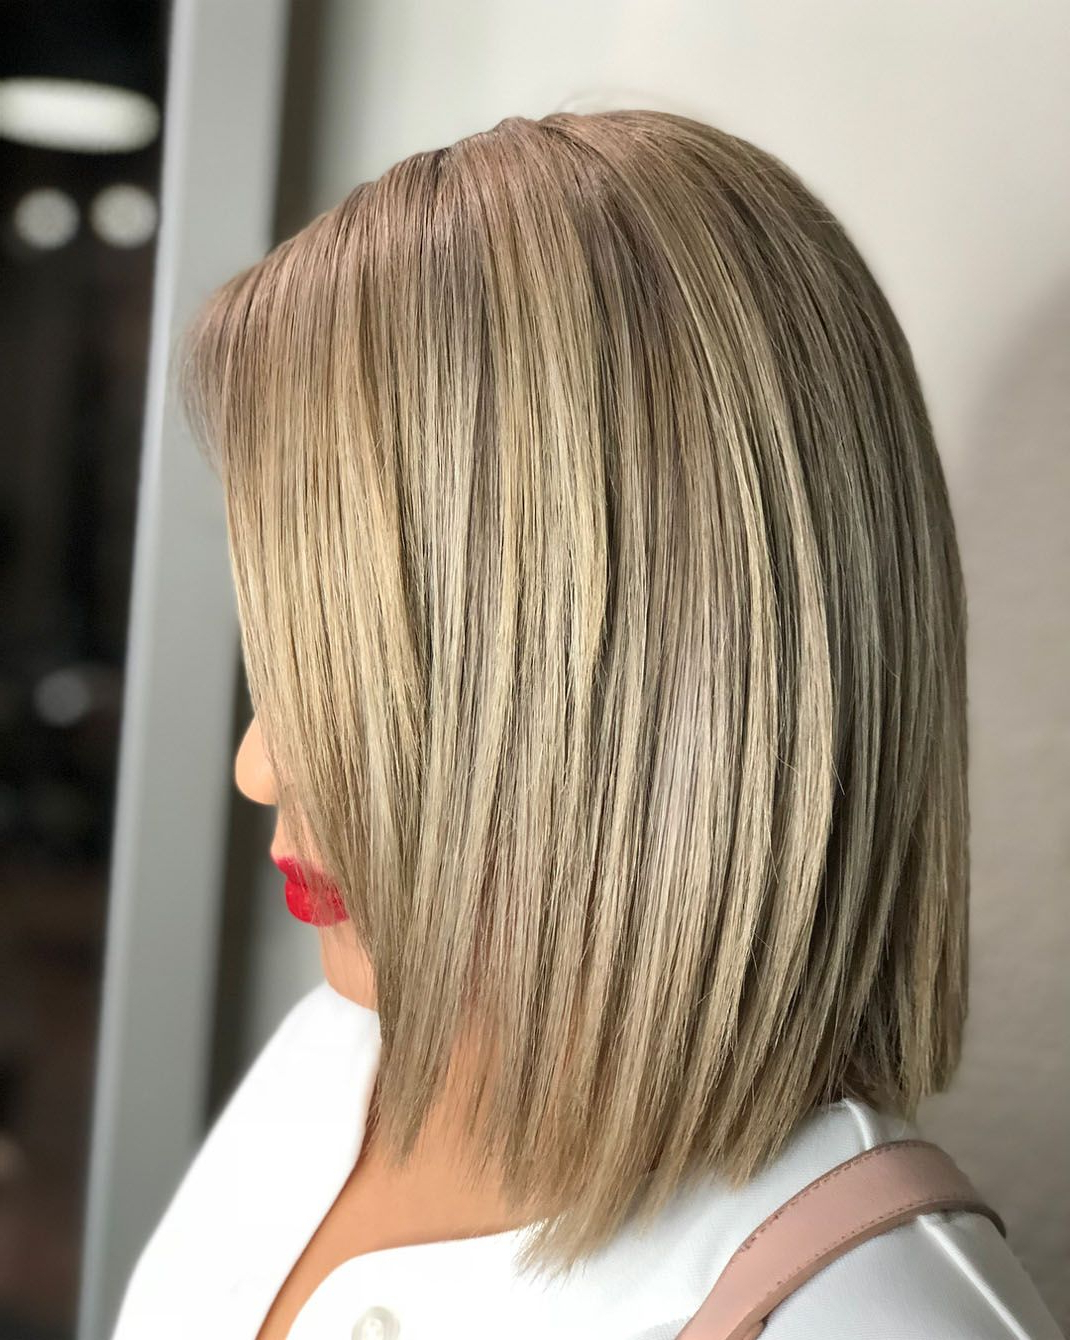 19 Best Spherical Bob Haircuts For Blonde Girls | Hair Intended For Simple And Stylish Bob Haircuts (View 5 of 20)